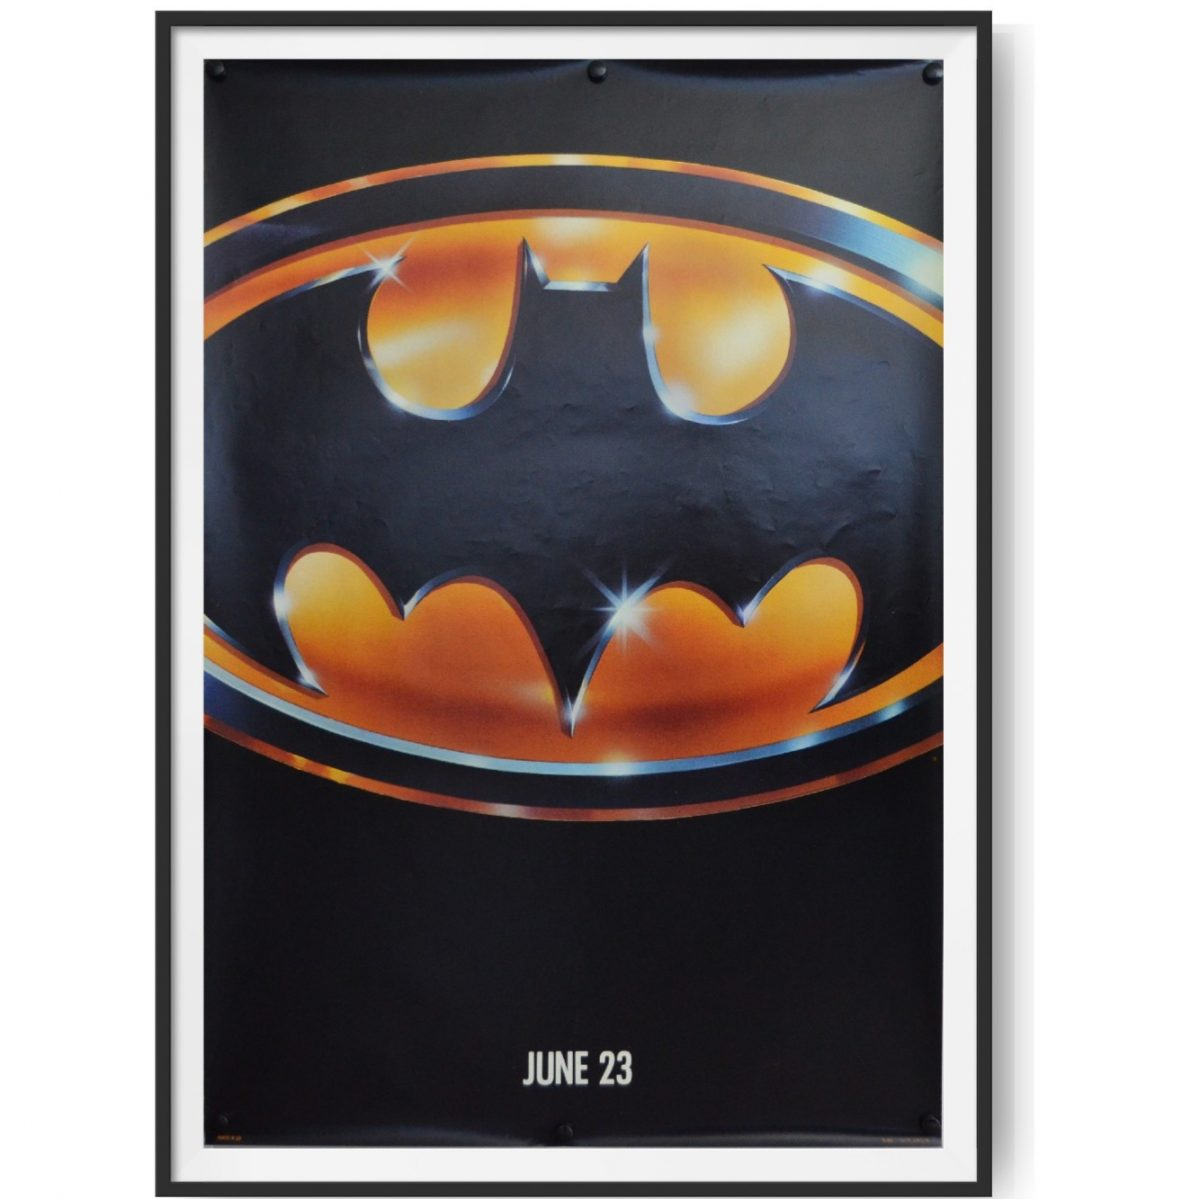 This original US cinema poster shows the iconic Batman logo used in the 1989 version of the film, starring Michael Keaton and Jack Nicholson.